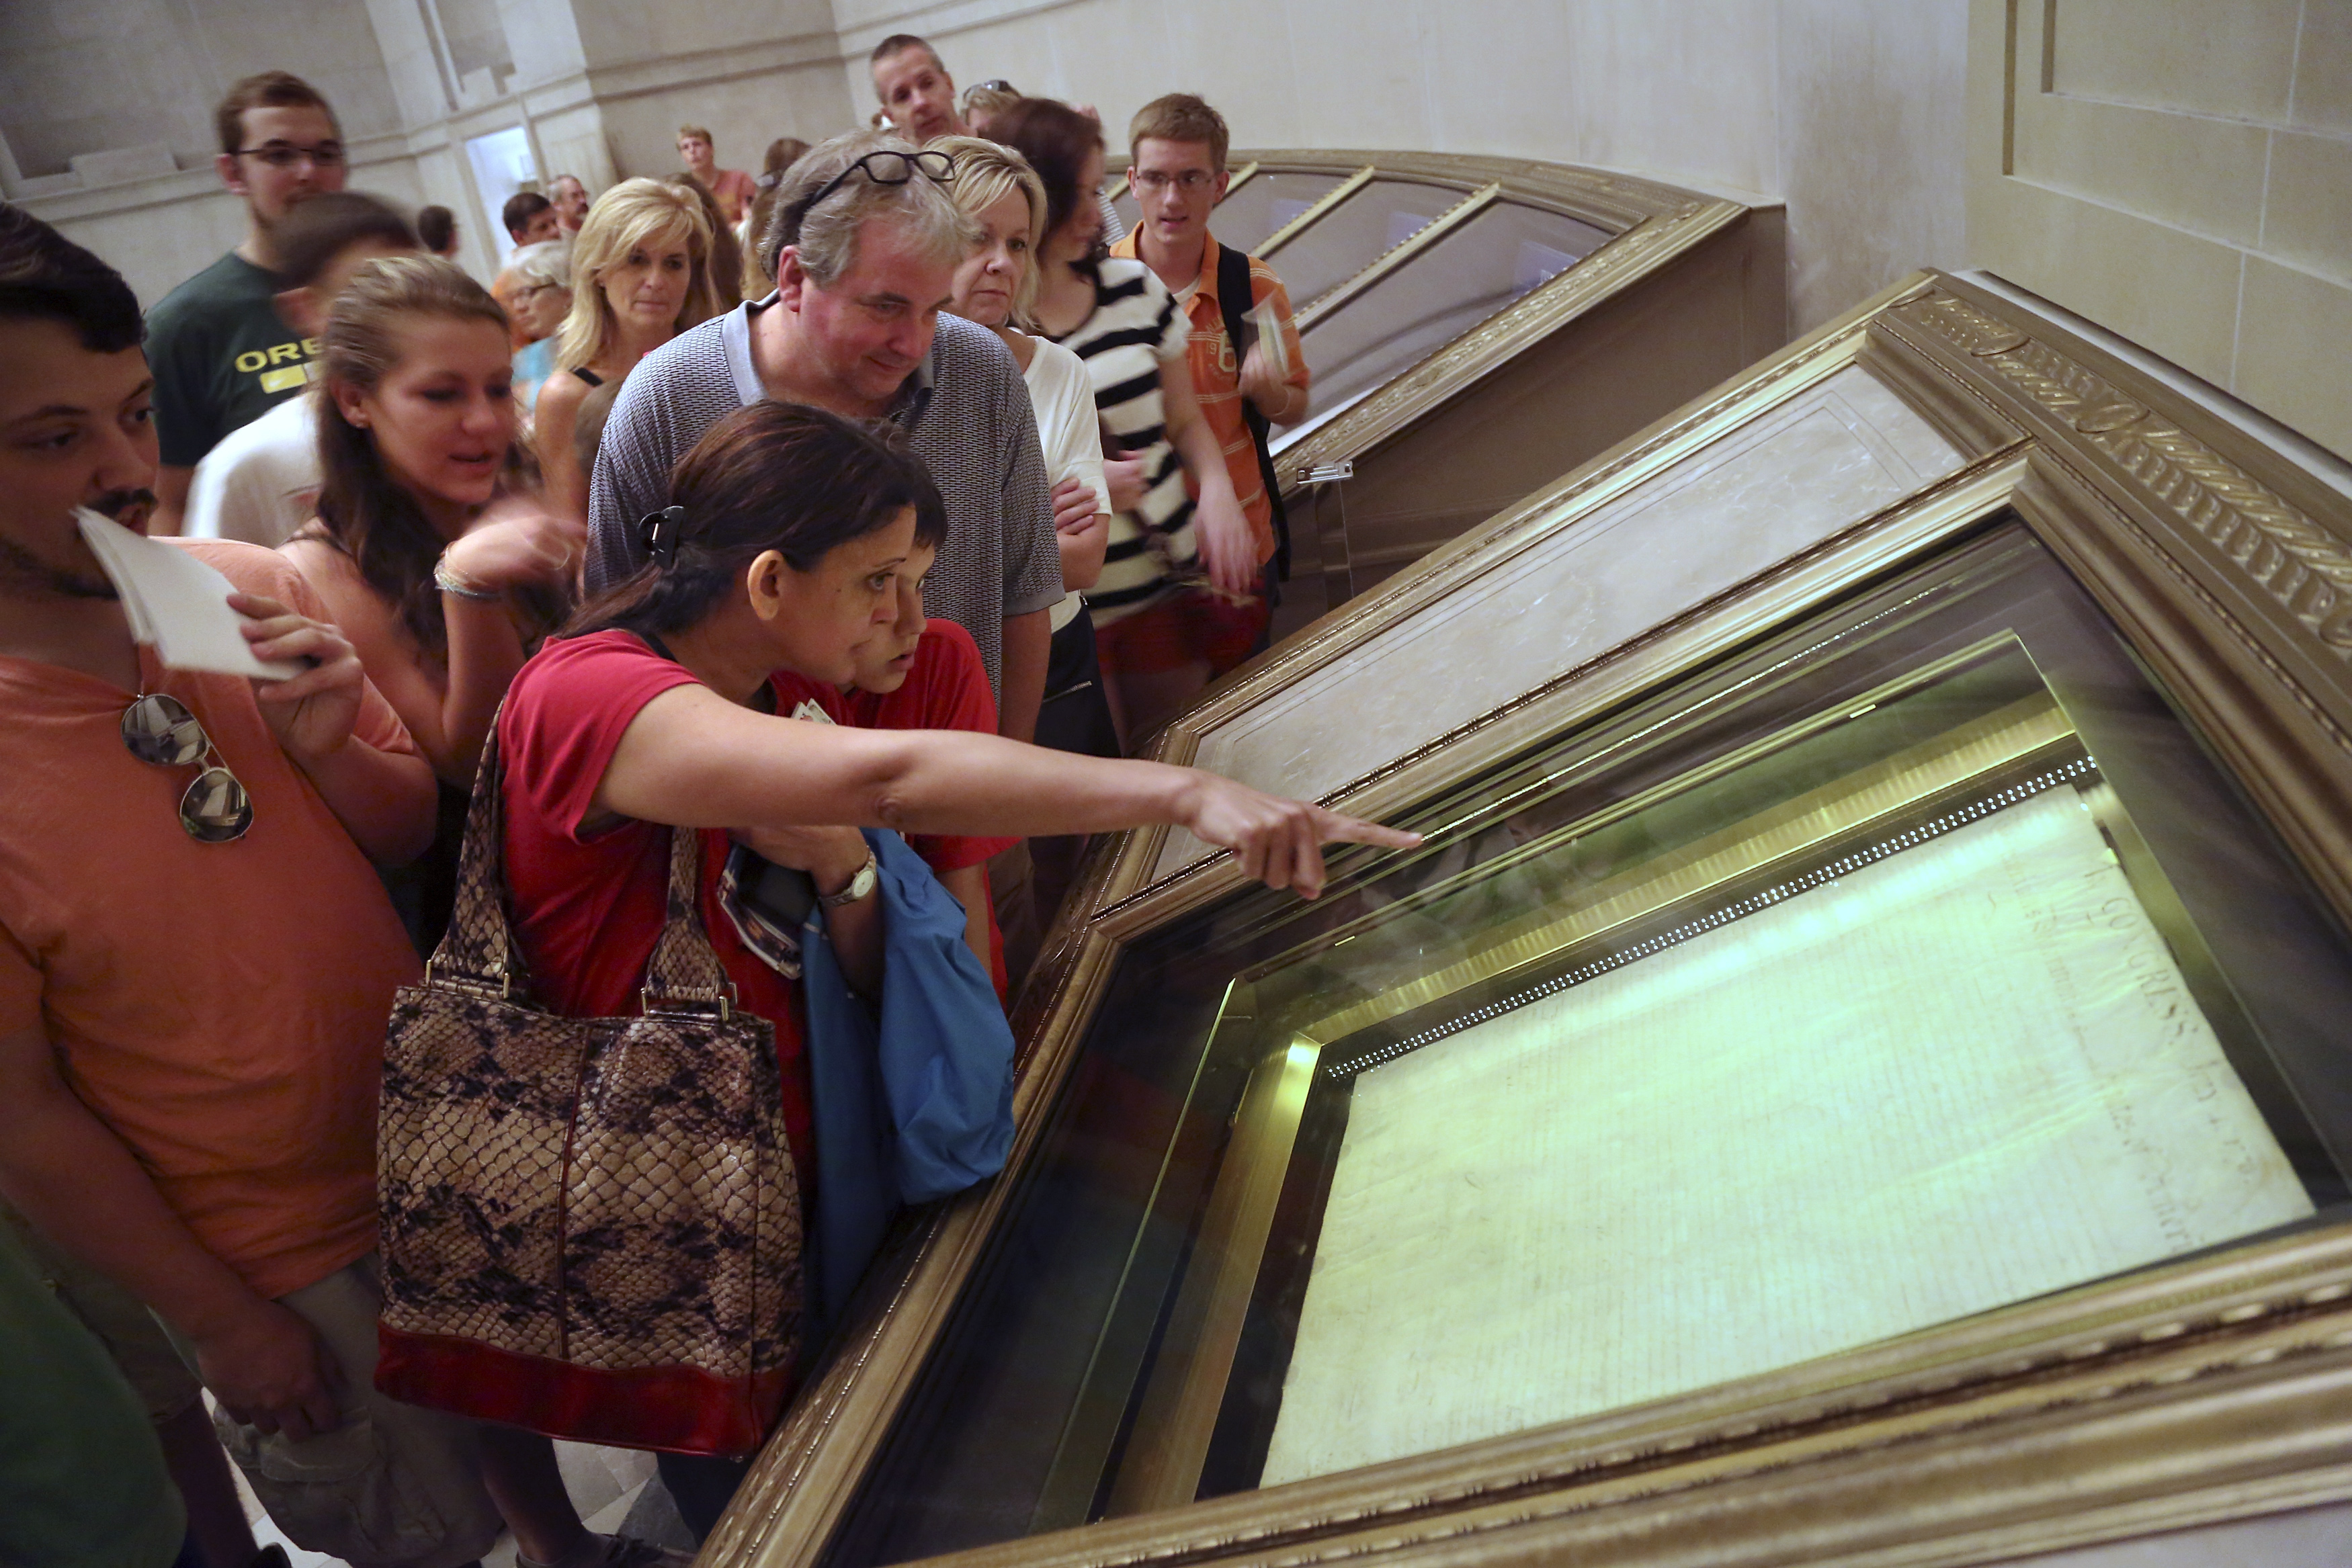 FILE -- Visitors to the National Archives view the Declaration of Independence, preserved under glass and special lighting, ahead of the Fourth of July Independence Day holiday in Washington, July 3, 2013. REUTERS/Jonathan Ernst